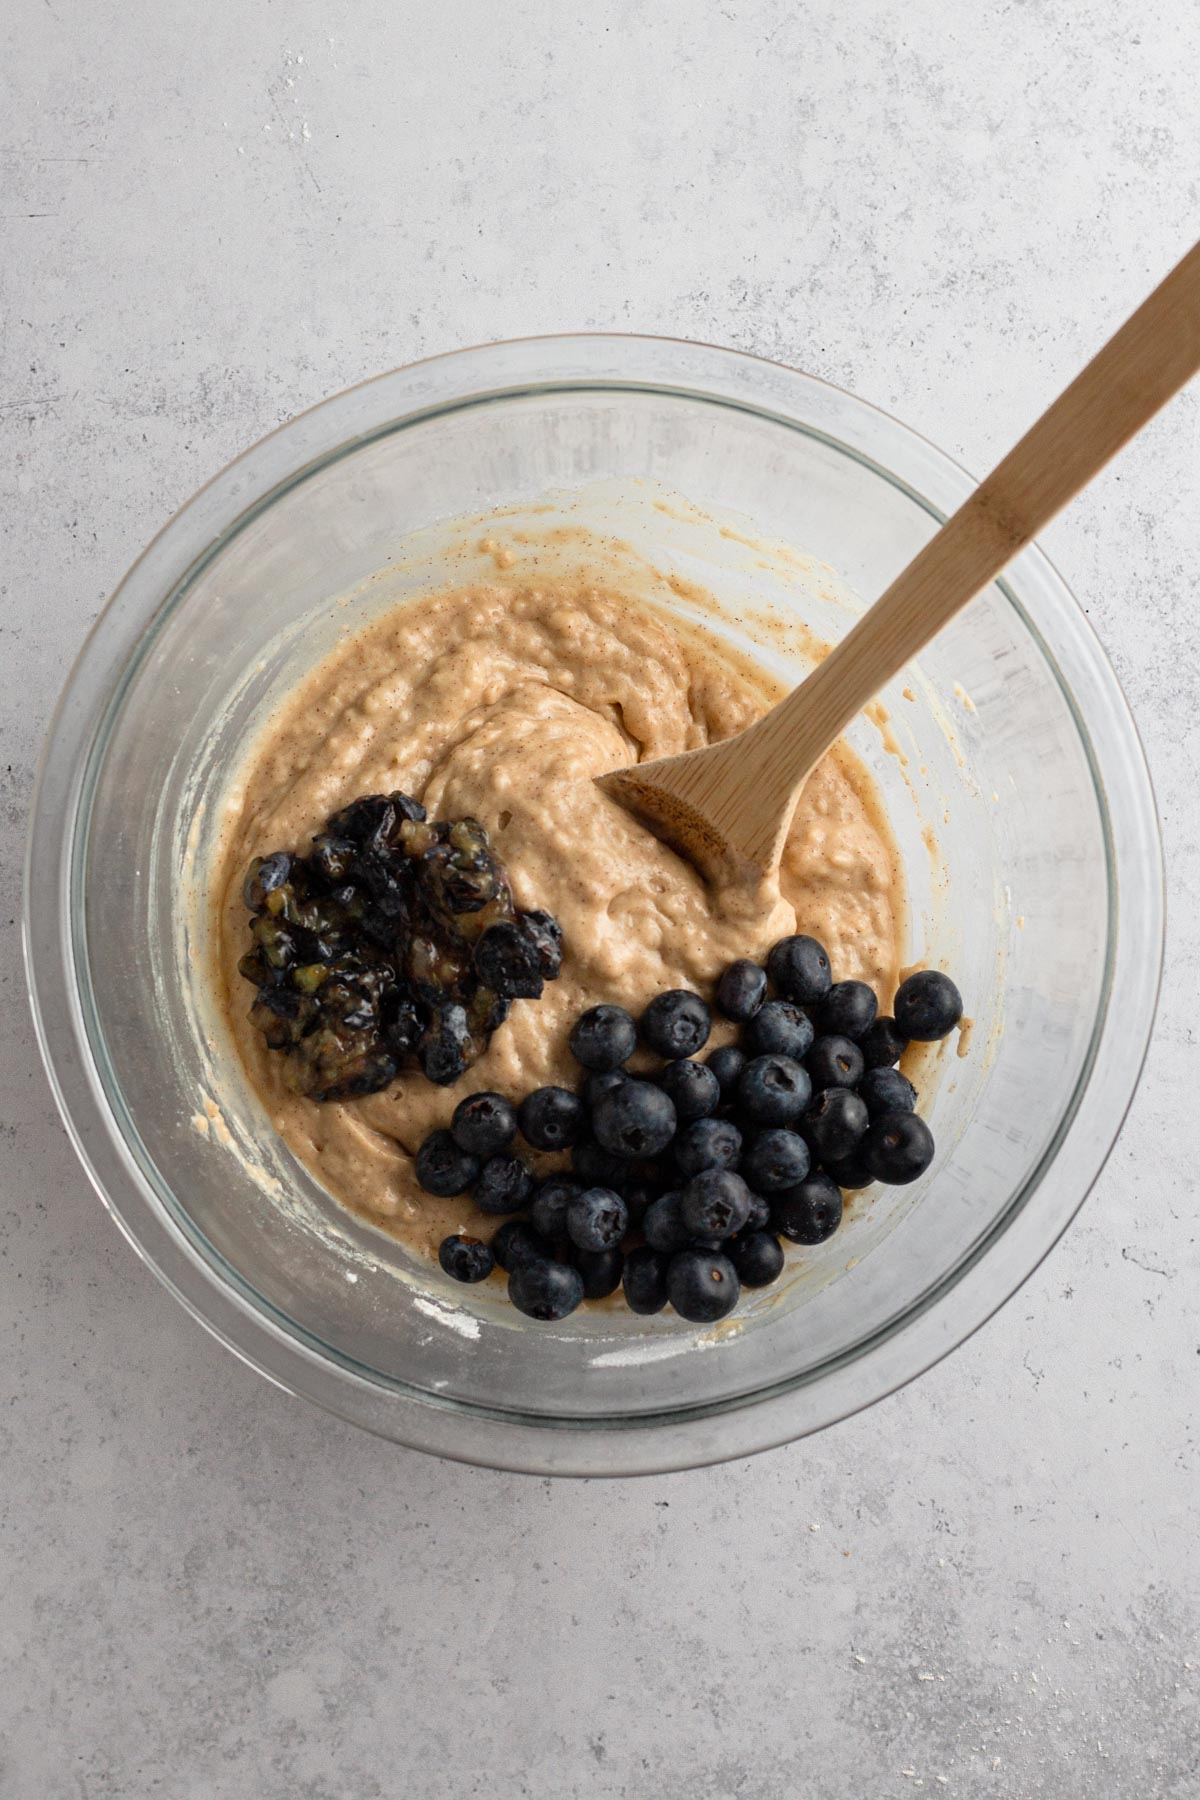 overhead view of muffin batter with blueberries in a glass bowl